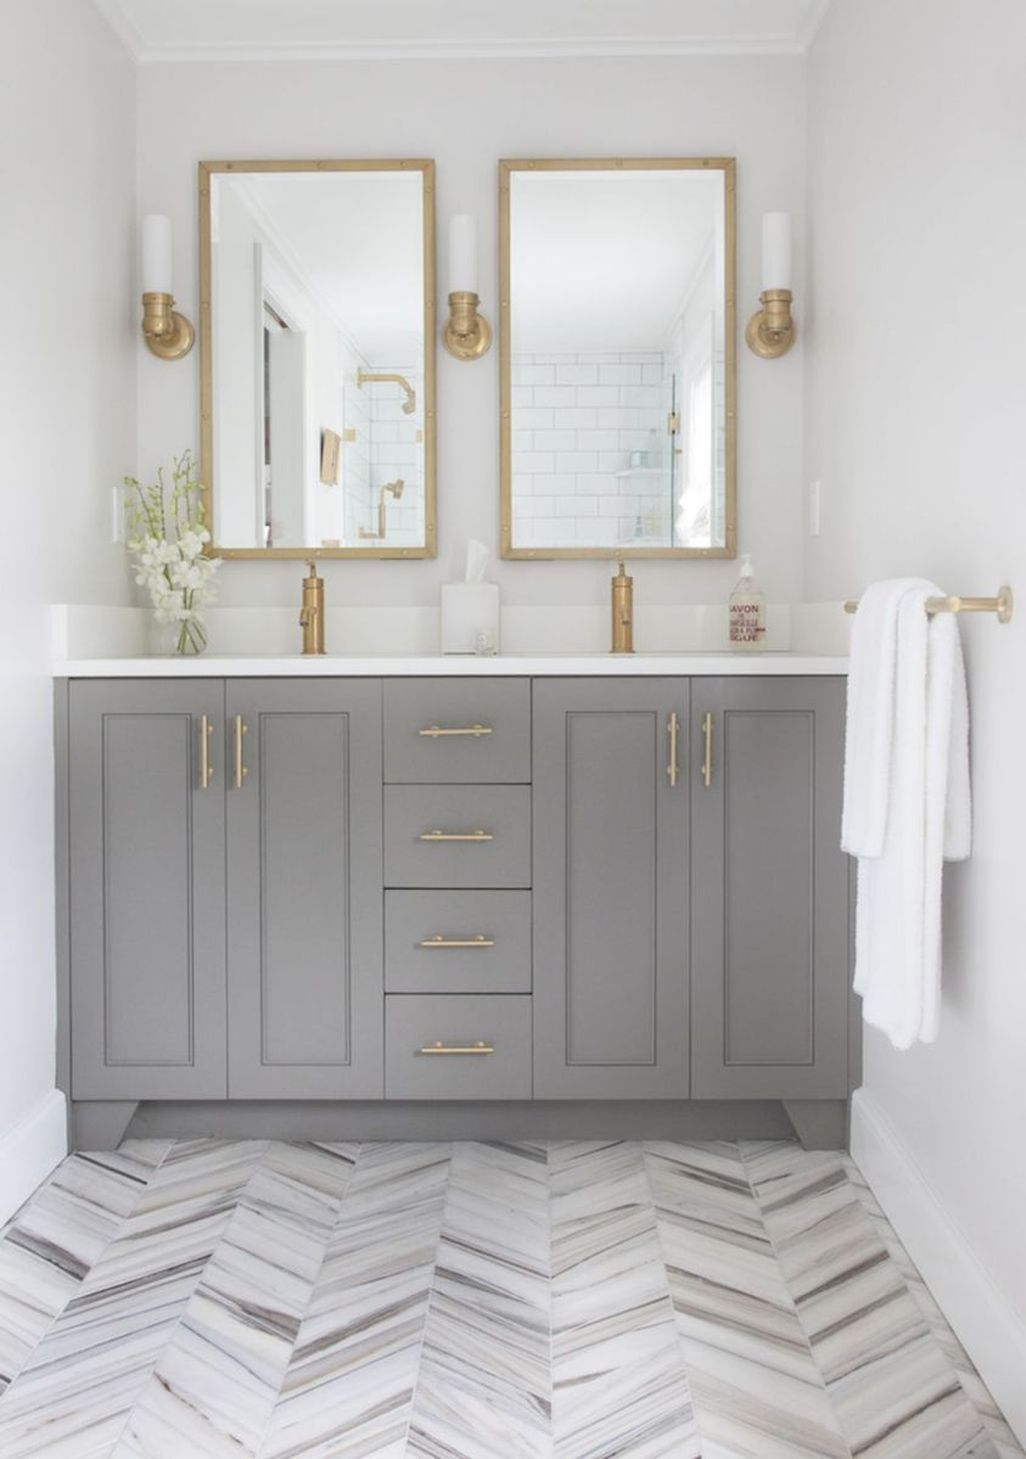 Cool 47 Awesome Small Master Bathroom Remodel Design Ideas. More at ...